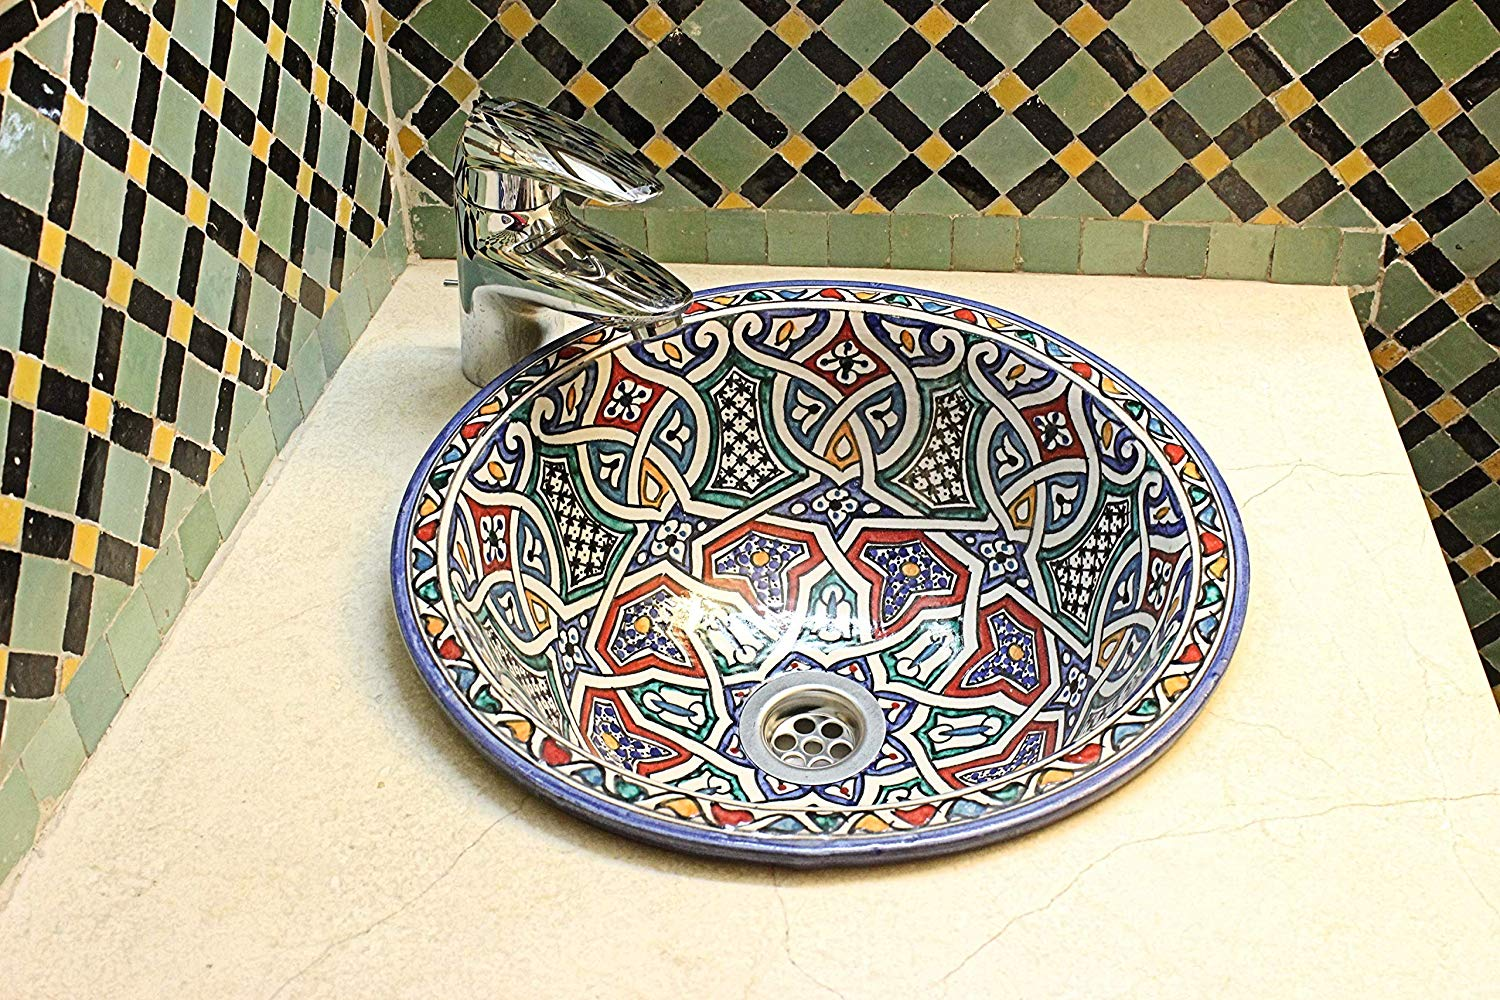 Moroccan Sink 5 (Pattern on Inside)